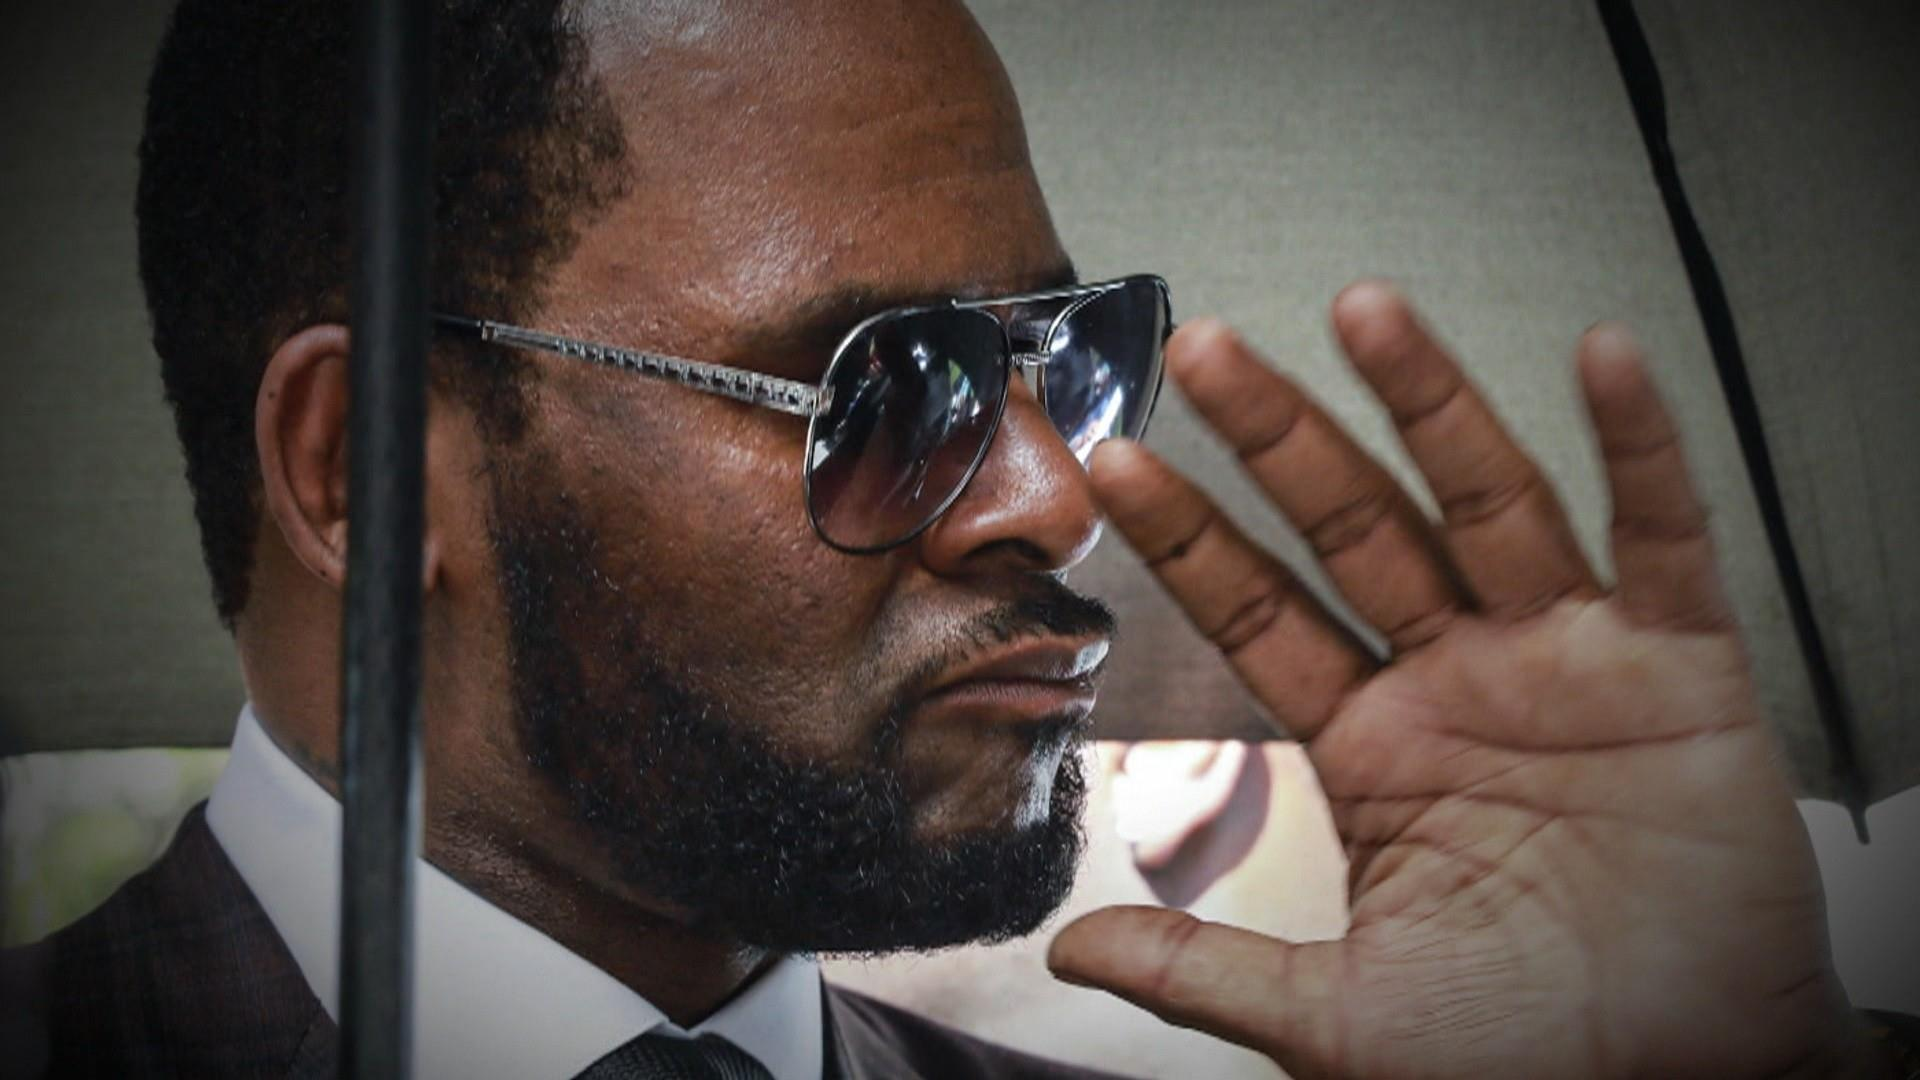 R. Kelly arrested on federal sex crime charges out of Chicago, New York